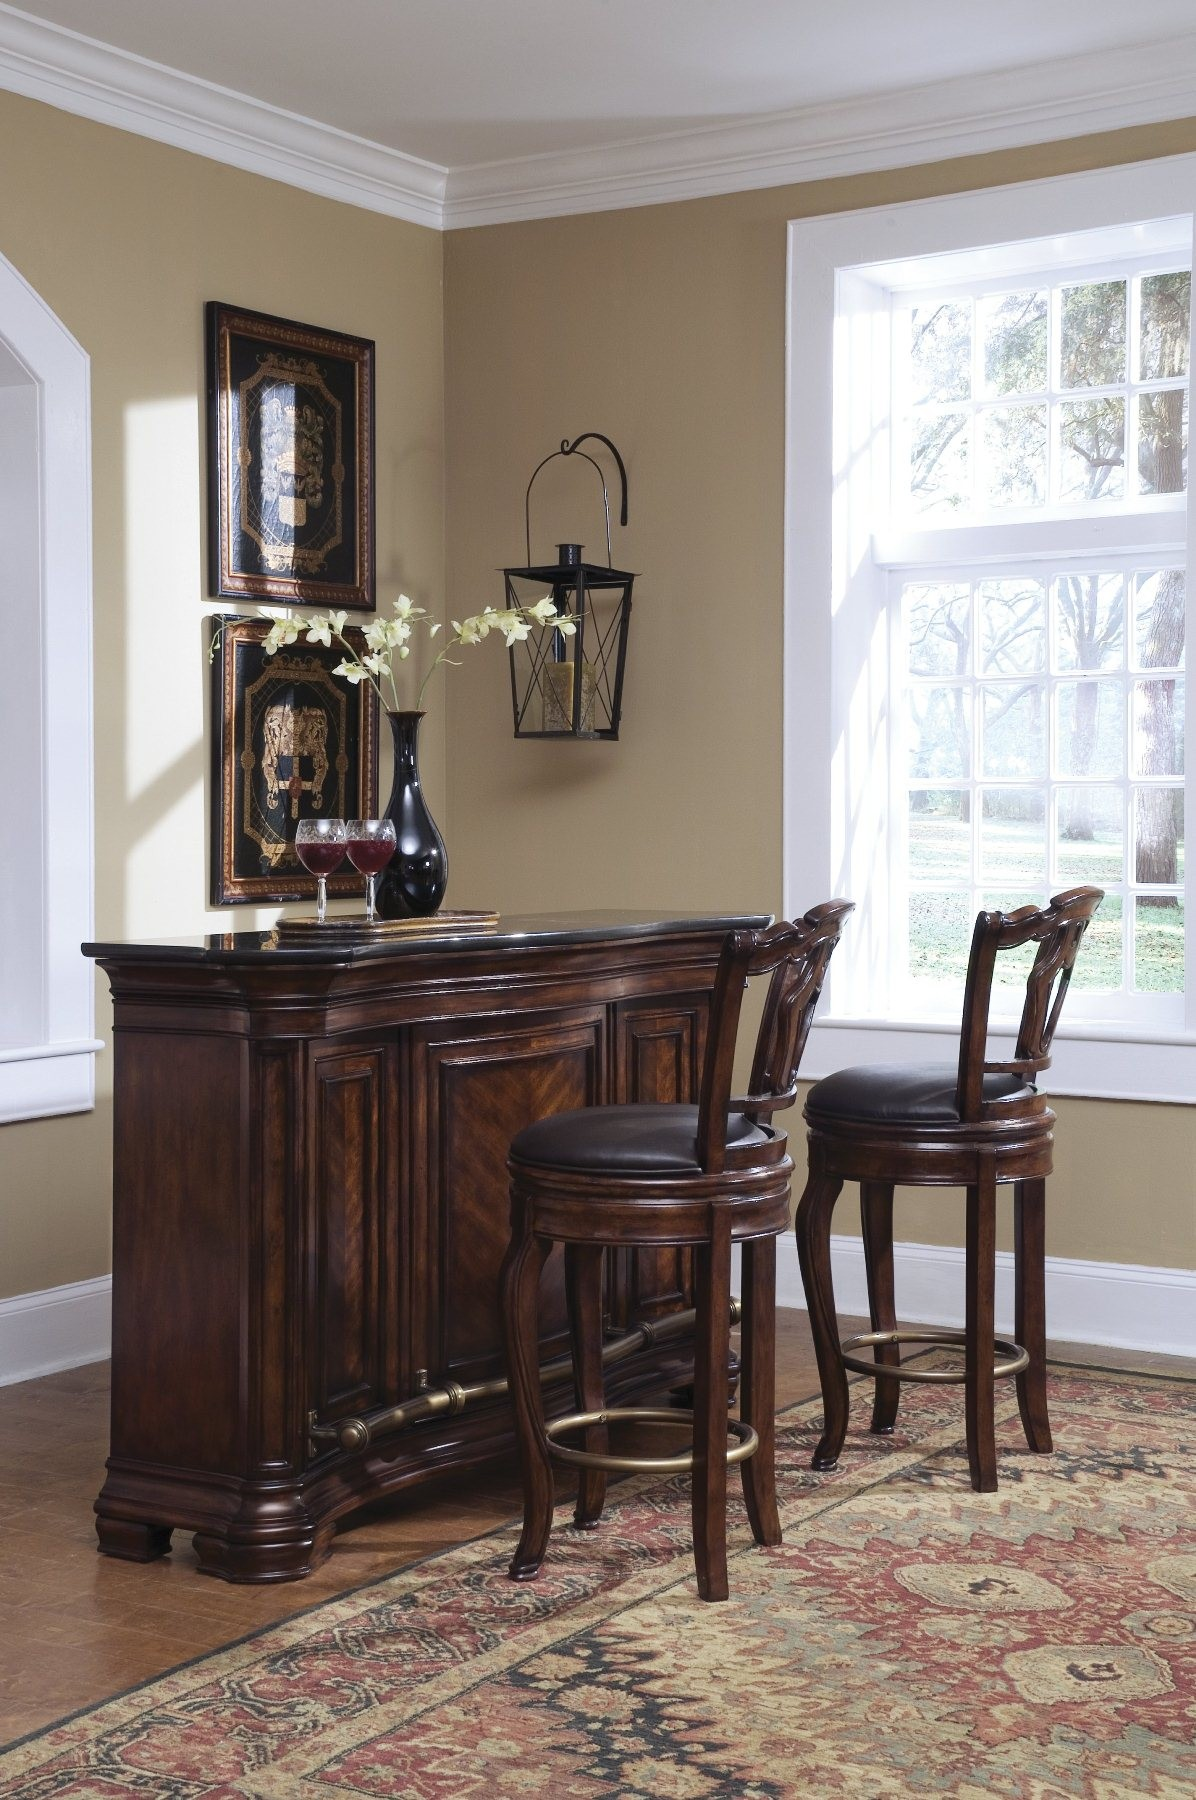 Toscano Vialetto Home Bar Set From Pulaski 657500 01